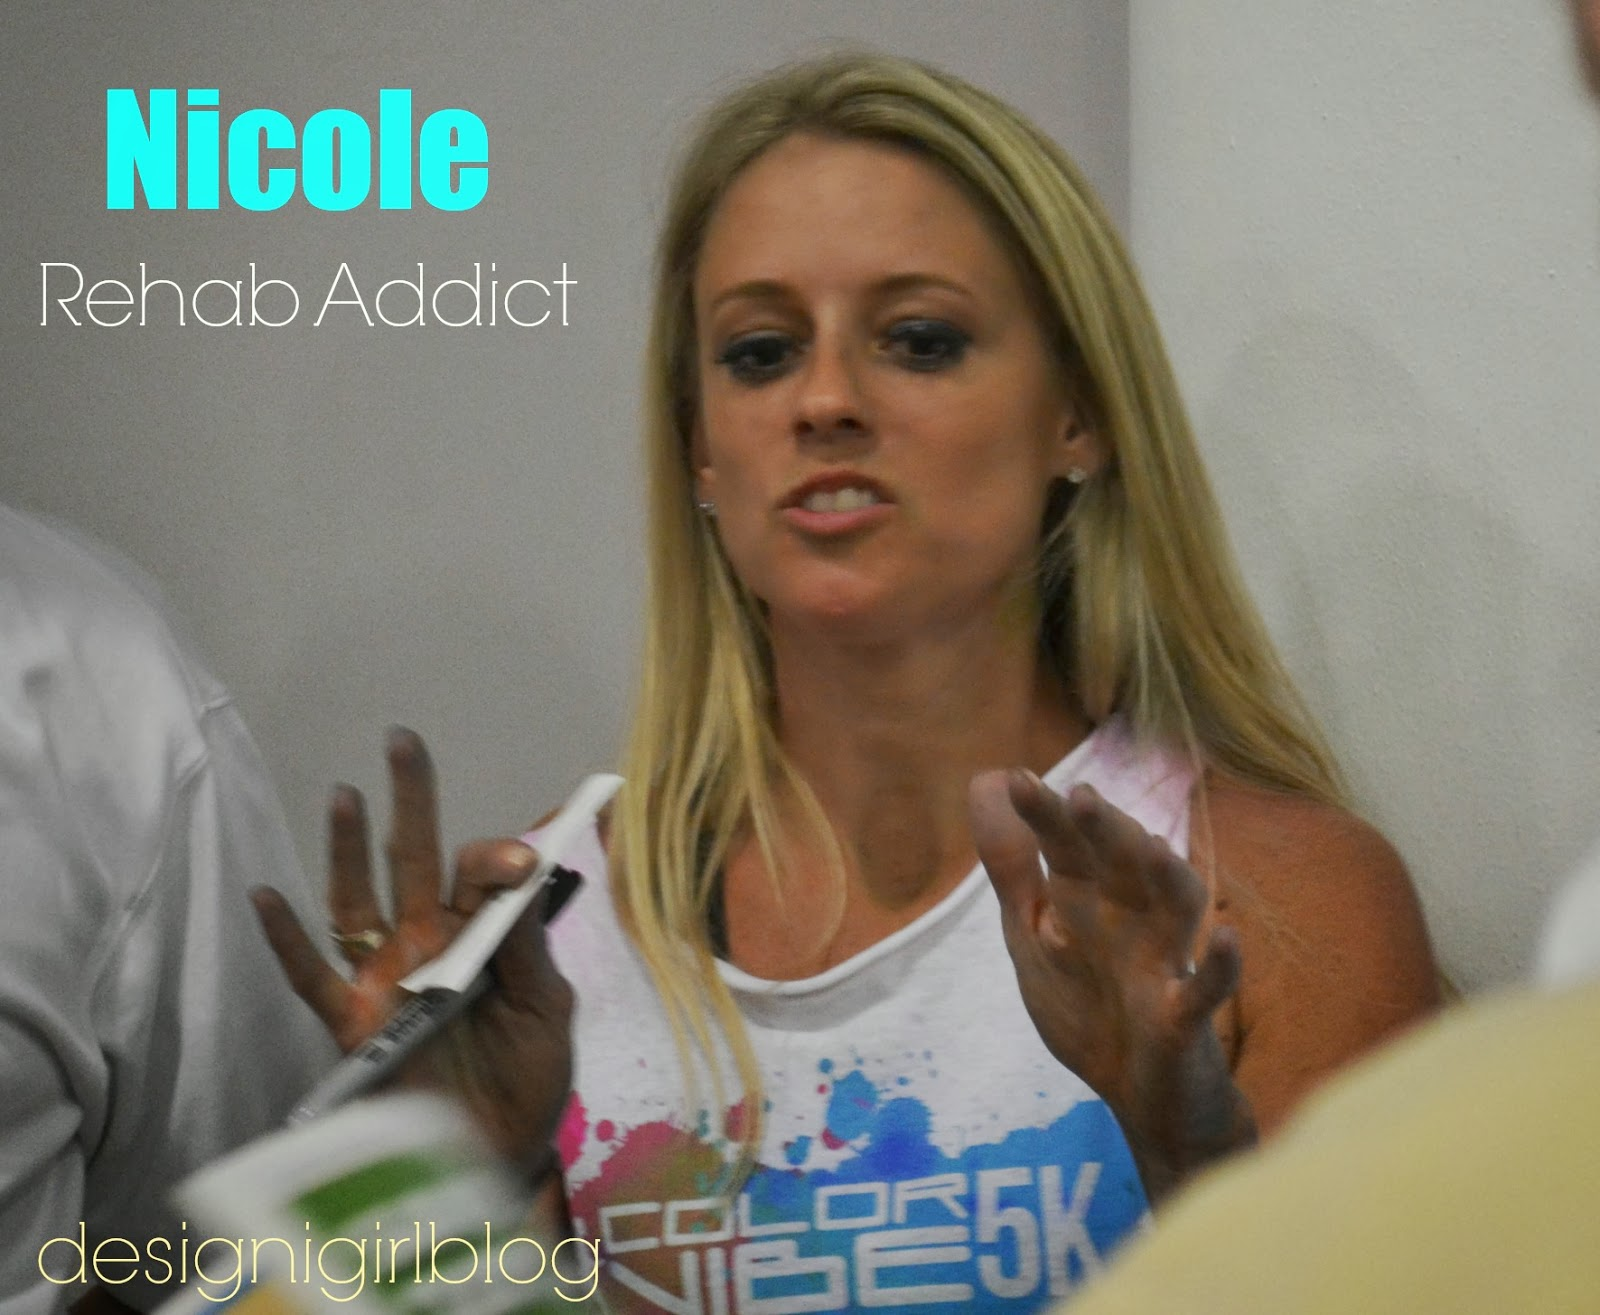 What did nicole curtis of rehab addict get arrested for